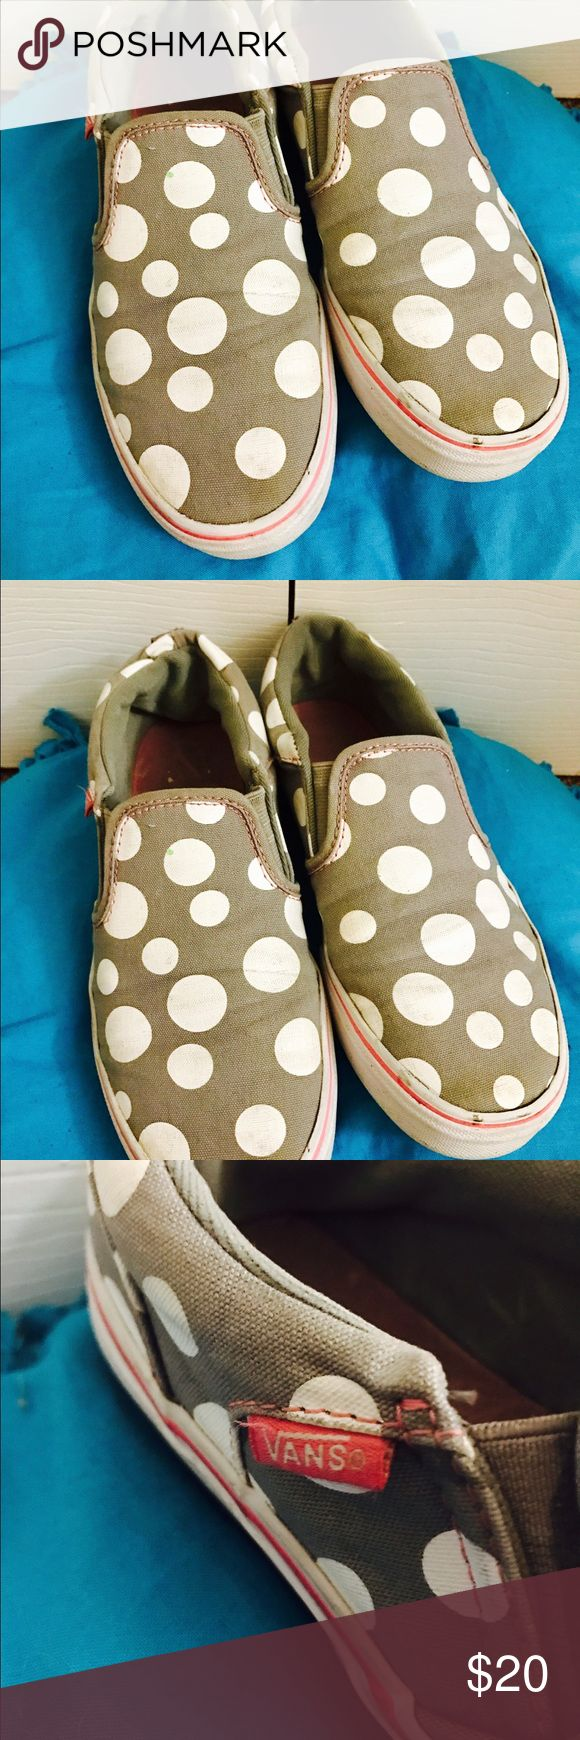 Grey polkadoted vans Grey polkadoted vans for kids! Supe cute super affordable, negotiable price! Vans Shoes